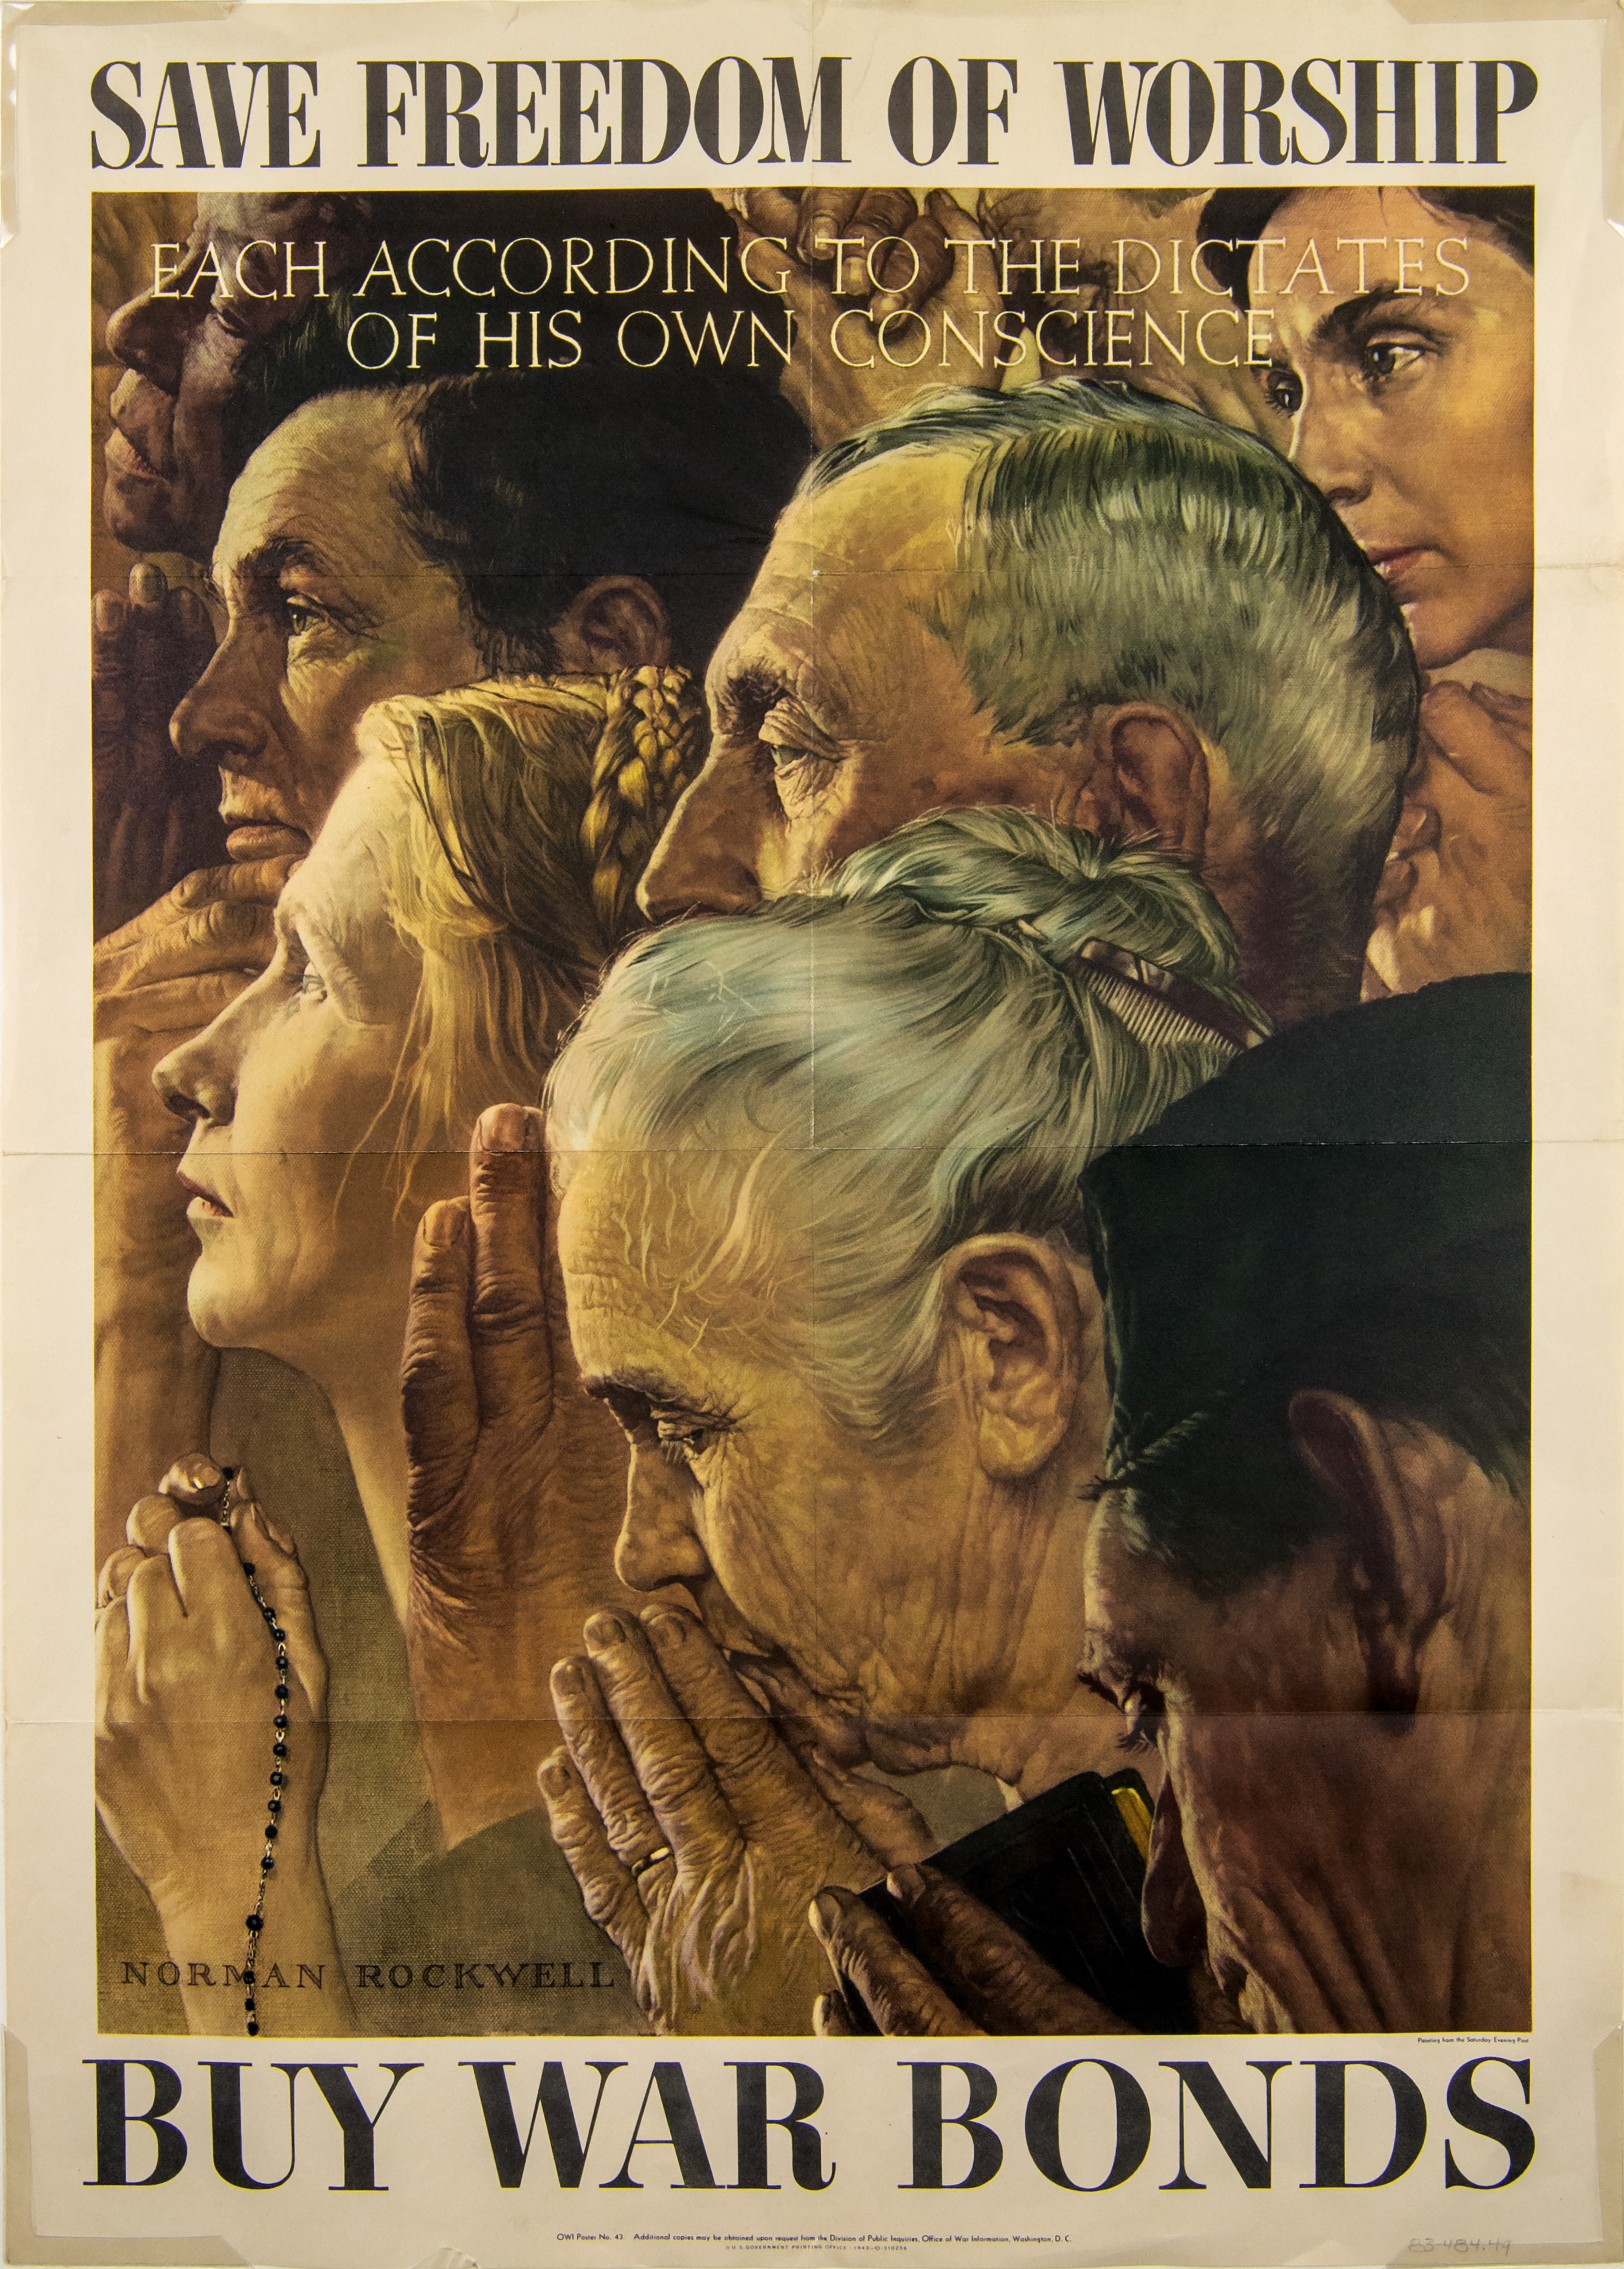 Photo of a poster from 1943, used to sell war bonds. Norman Rockwell's image of faces of Americans shown in a group, gathered together to pray and worship in different ways. One woman holds a rosary, another man holds a religious book.